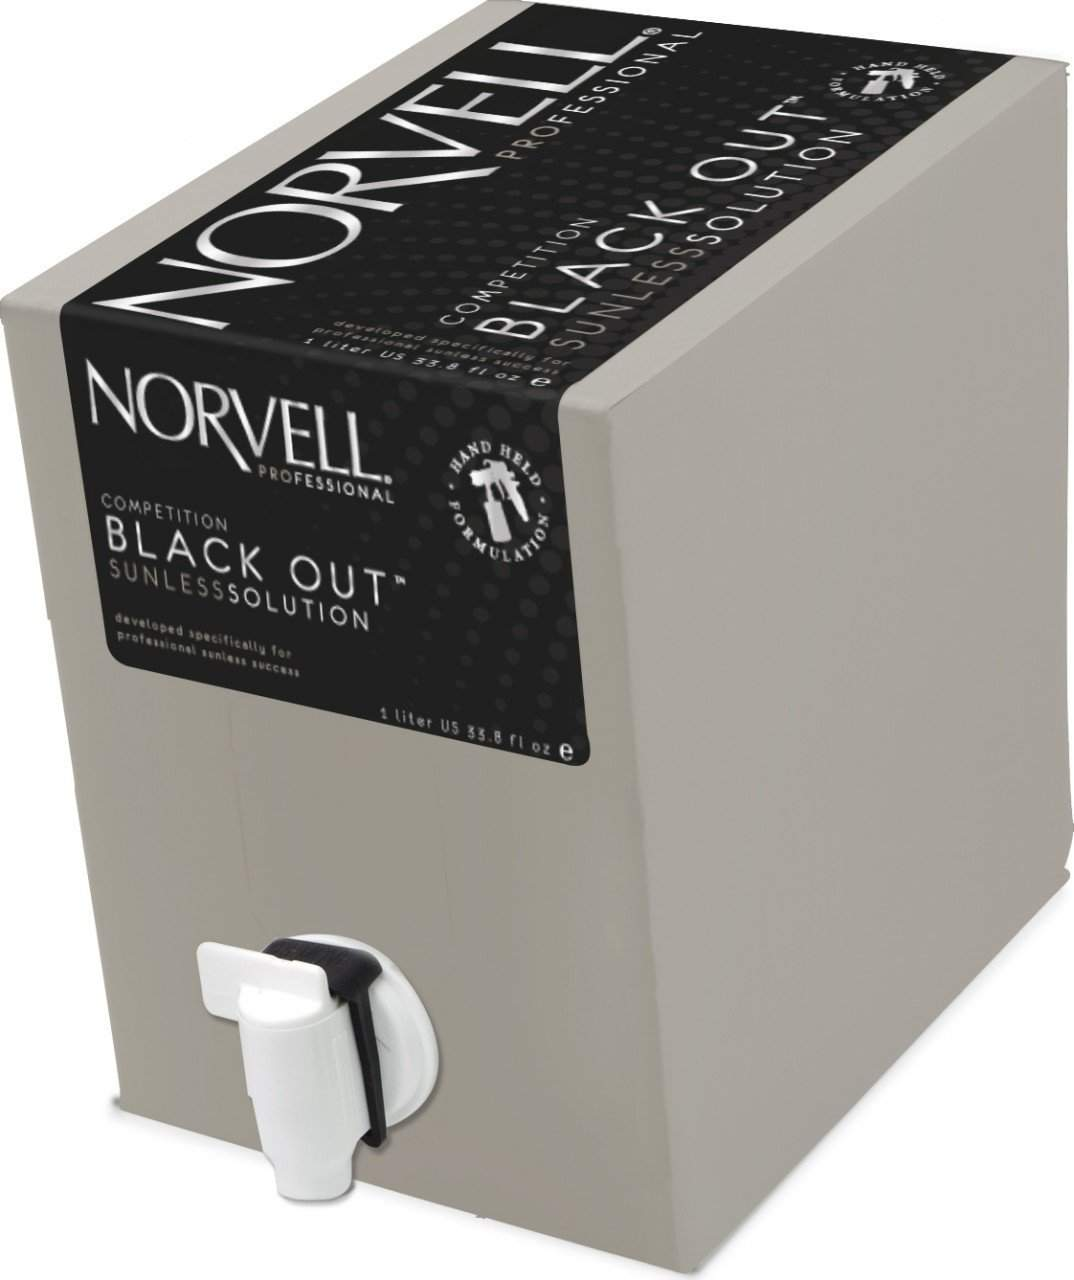 Norvell Competition Black Out Sunless Solution , Airbrush Solutions, Norvell, Sunless Deals